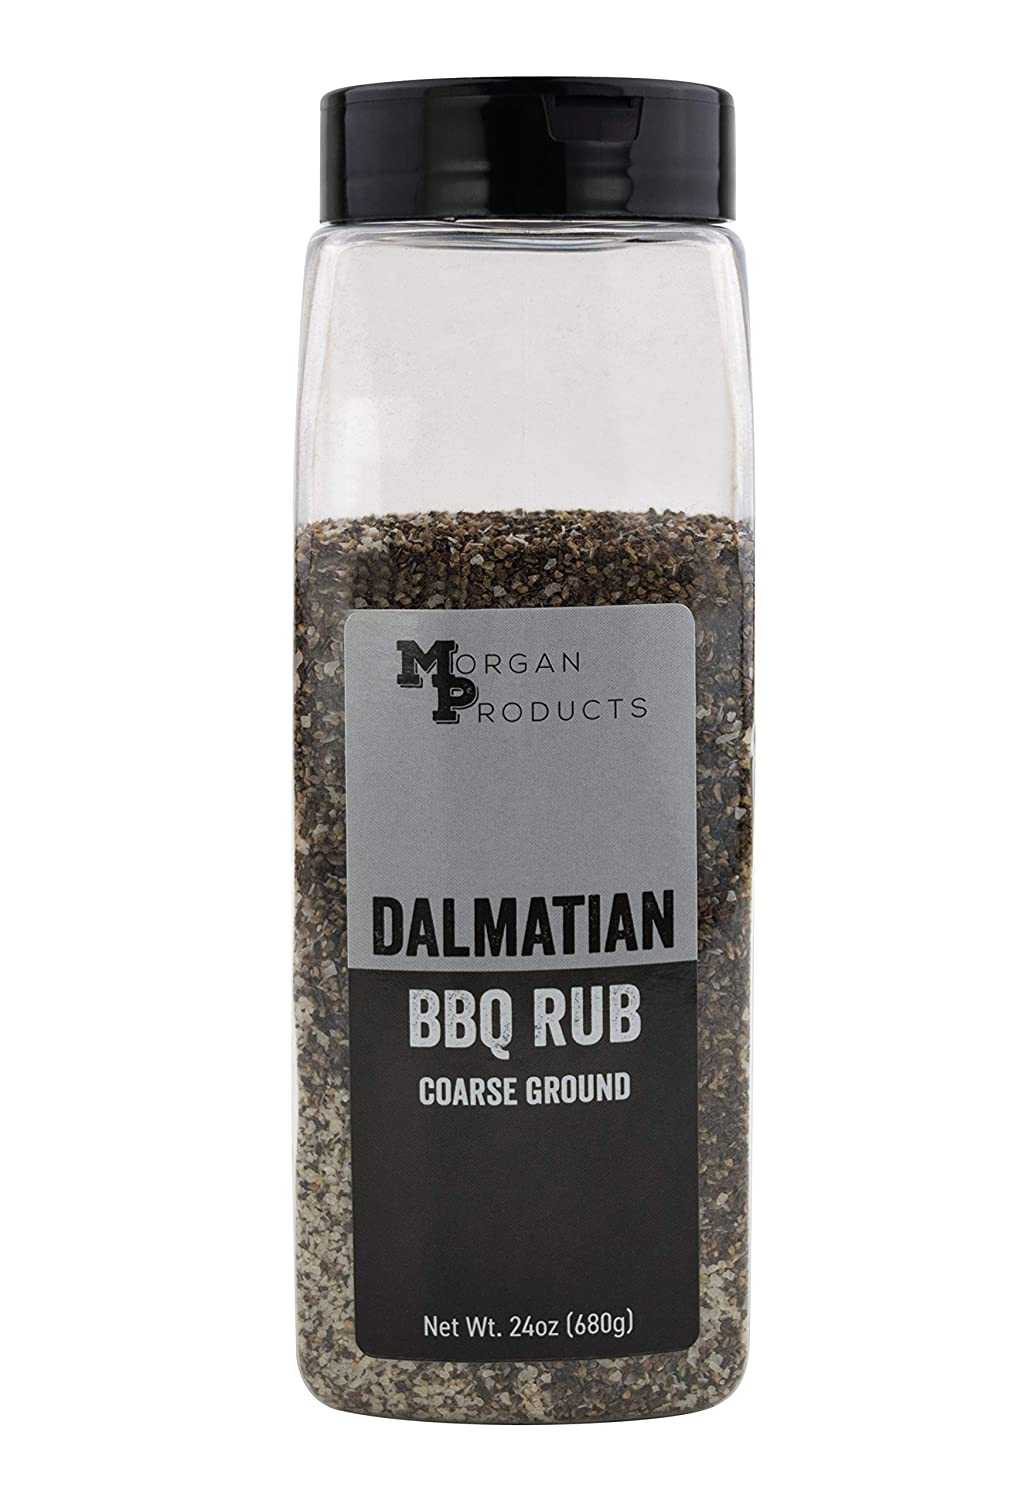 Dalmatian Rub, A coarse salt and pepper BBQ dry rub for smoking briskets, shoulders, ribs, and more. (24 ounce)